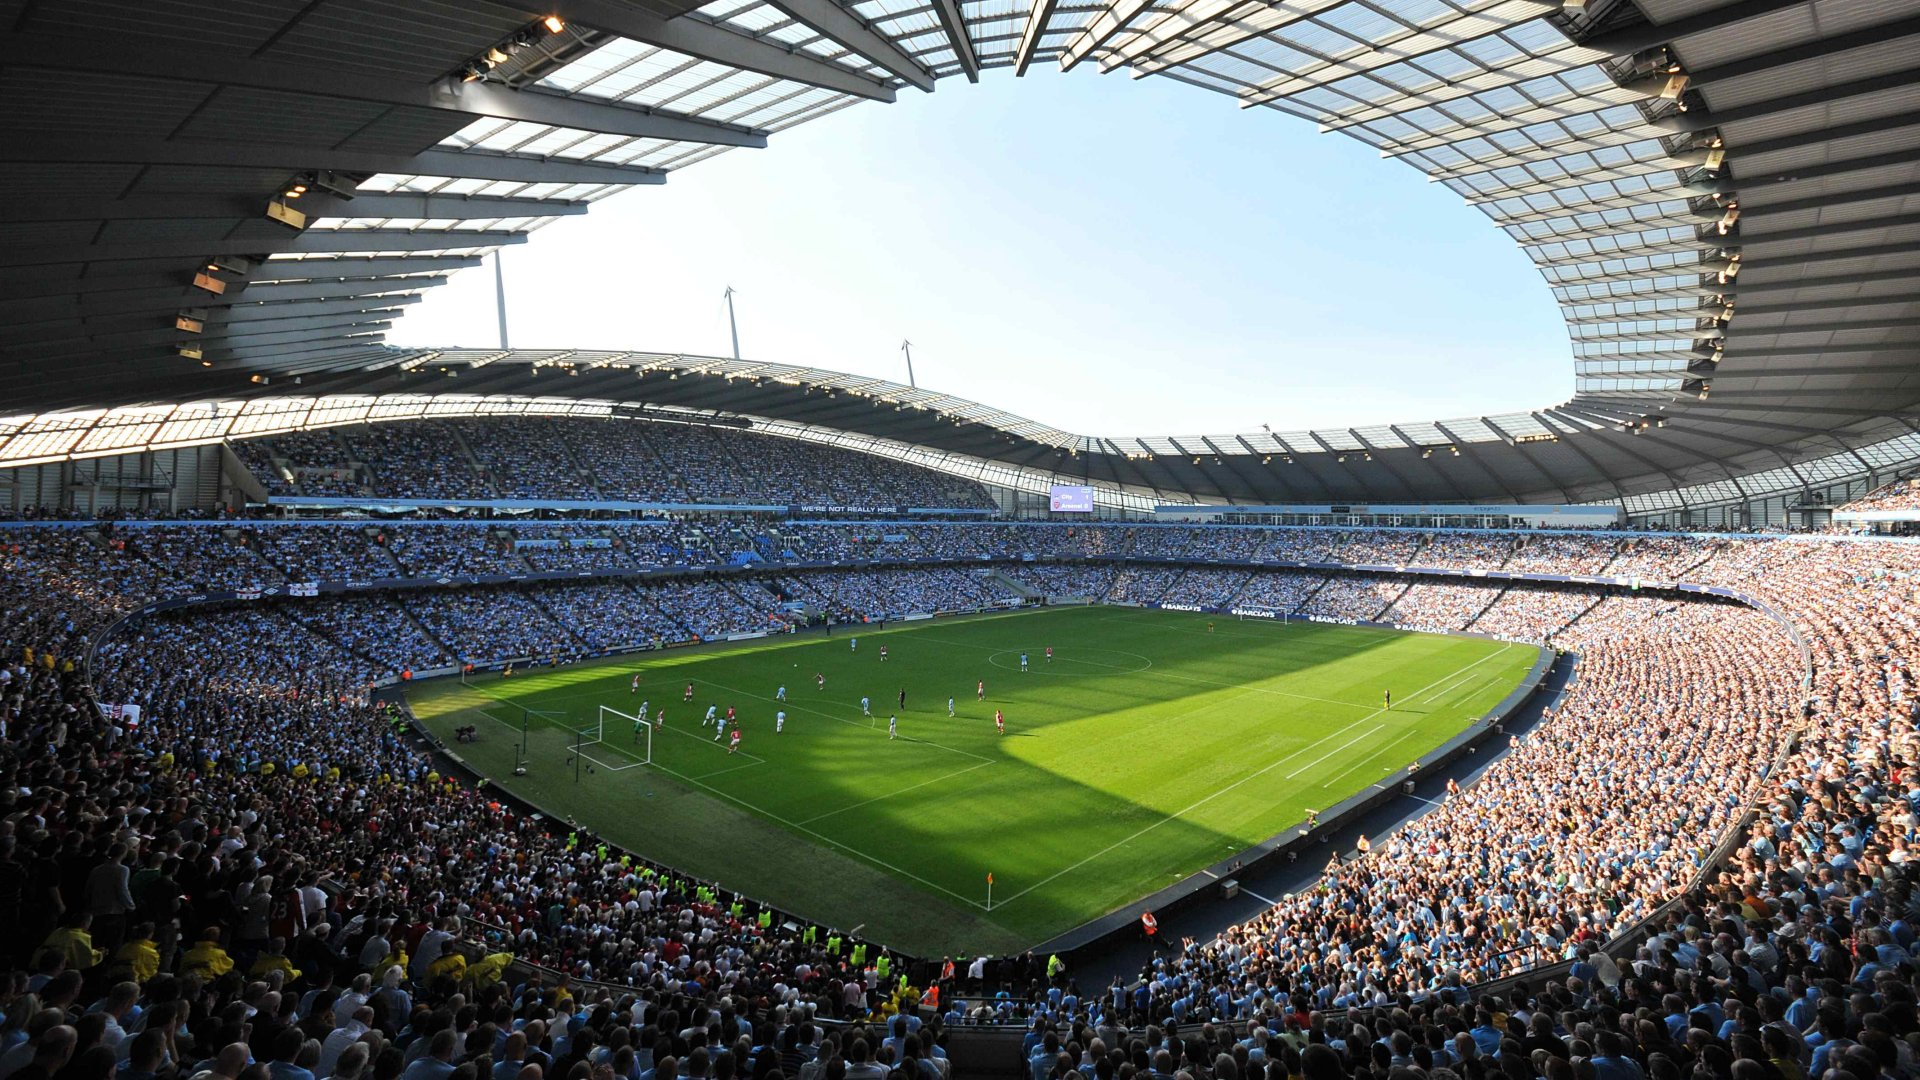 City Of Manchester Stadium: Manchester City F.C. (Football Club) Of The Barclay's